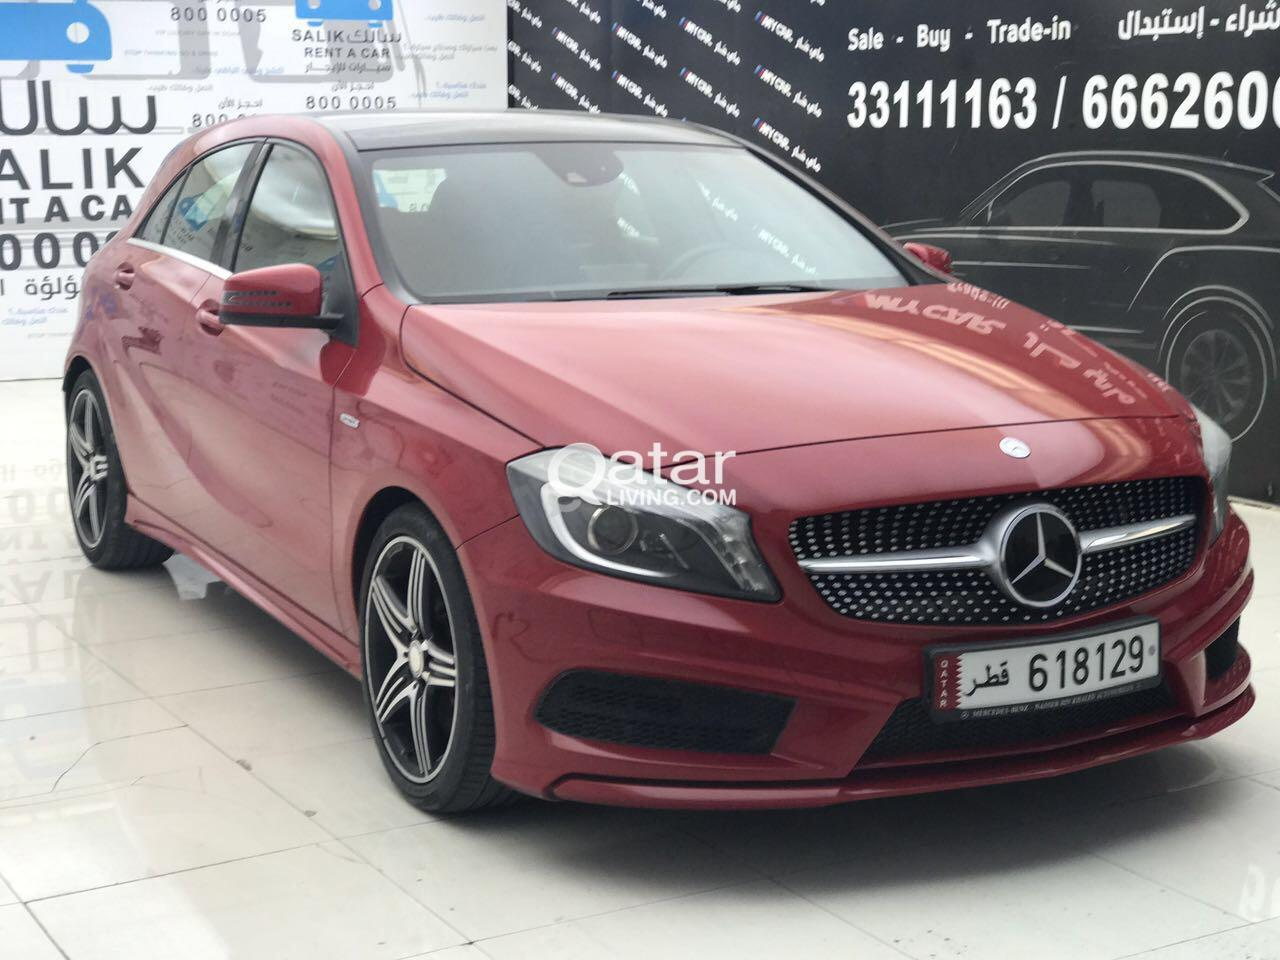 Mercedes Benz A250 for sale | Qatar Living